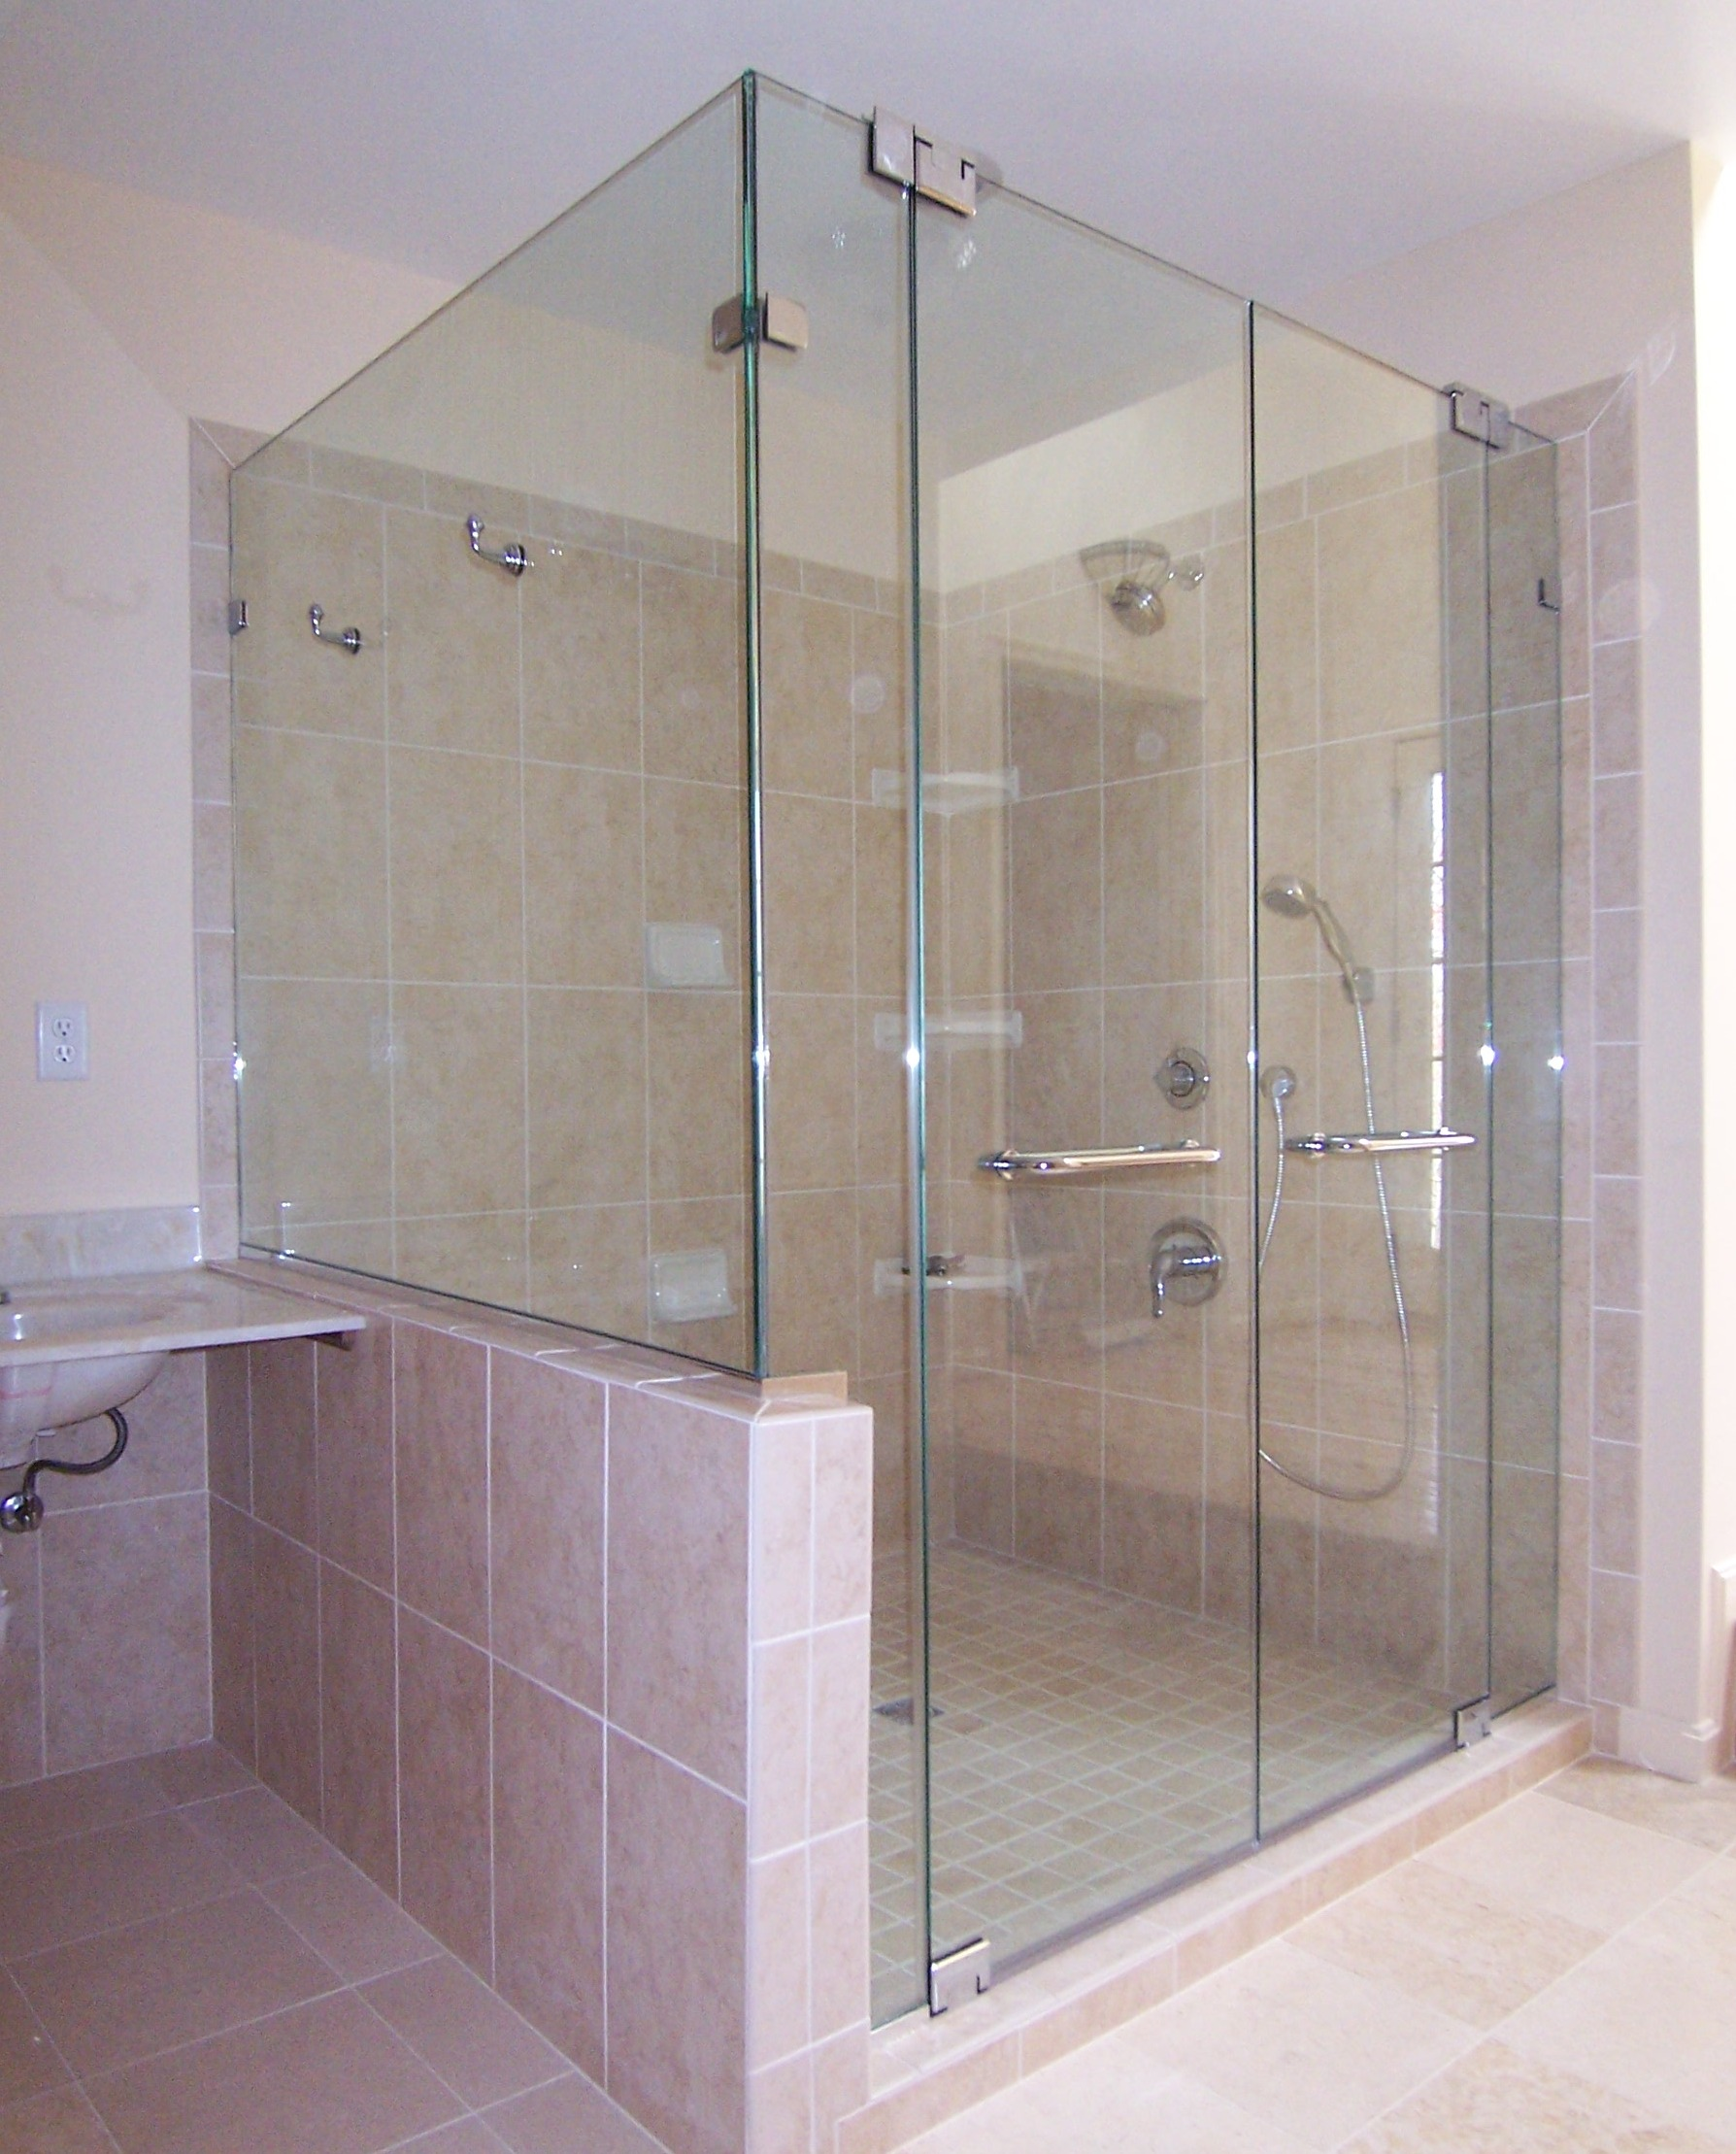 Panel door panel return shower door king shower door installations frameless panel french doors panel return planetlyrics Gallery